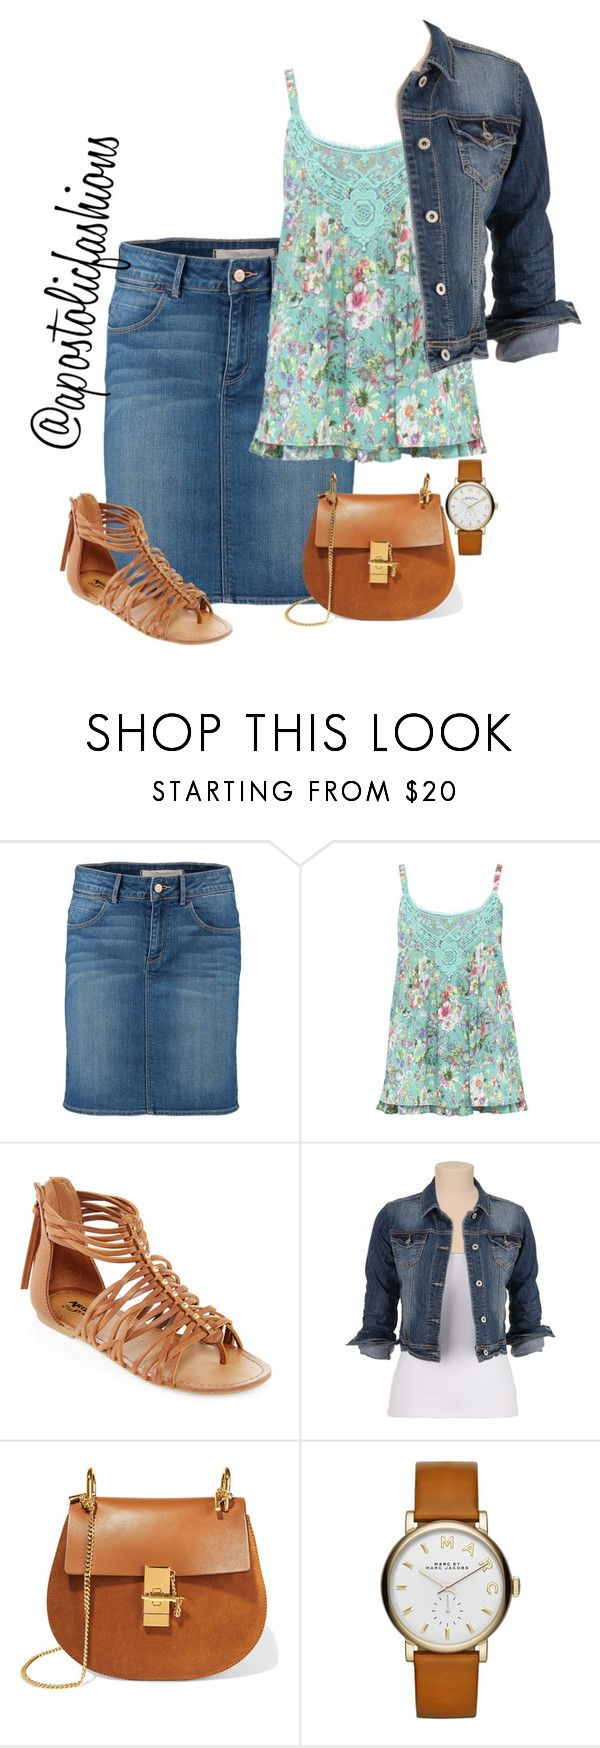 """Apostolic Fashions #1253"" by apostolicfashions on Polyvore featuring Wrangler, M&Co, Arizona, maurices, Chloé and Marc Jacobs"